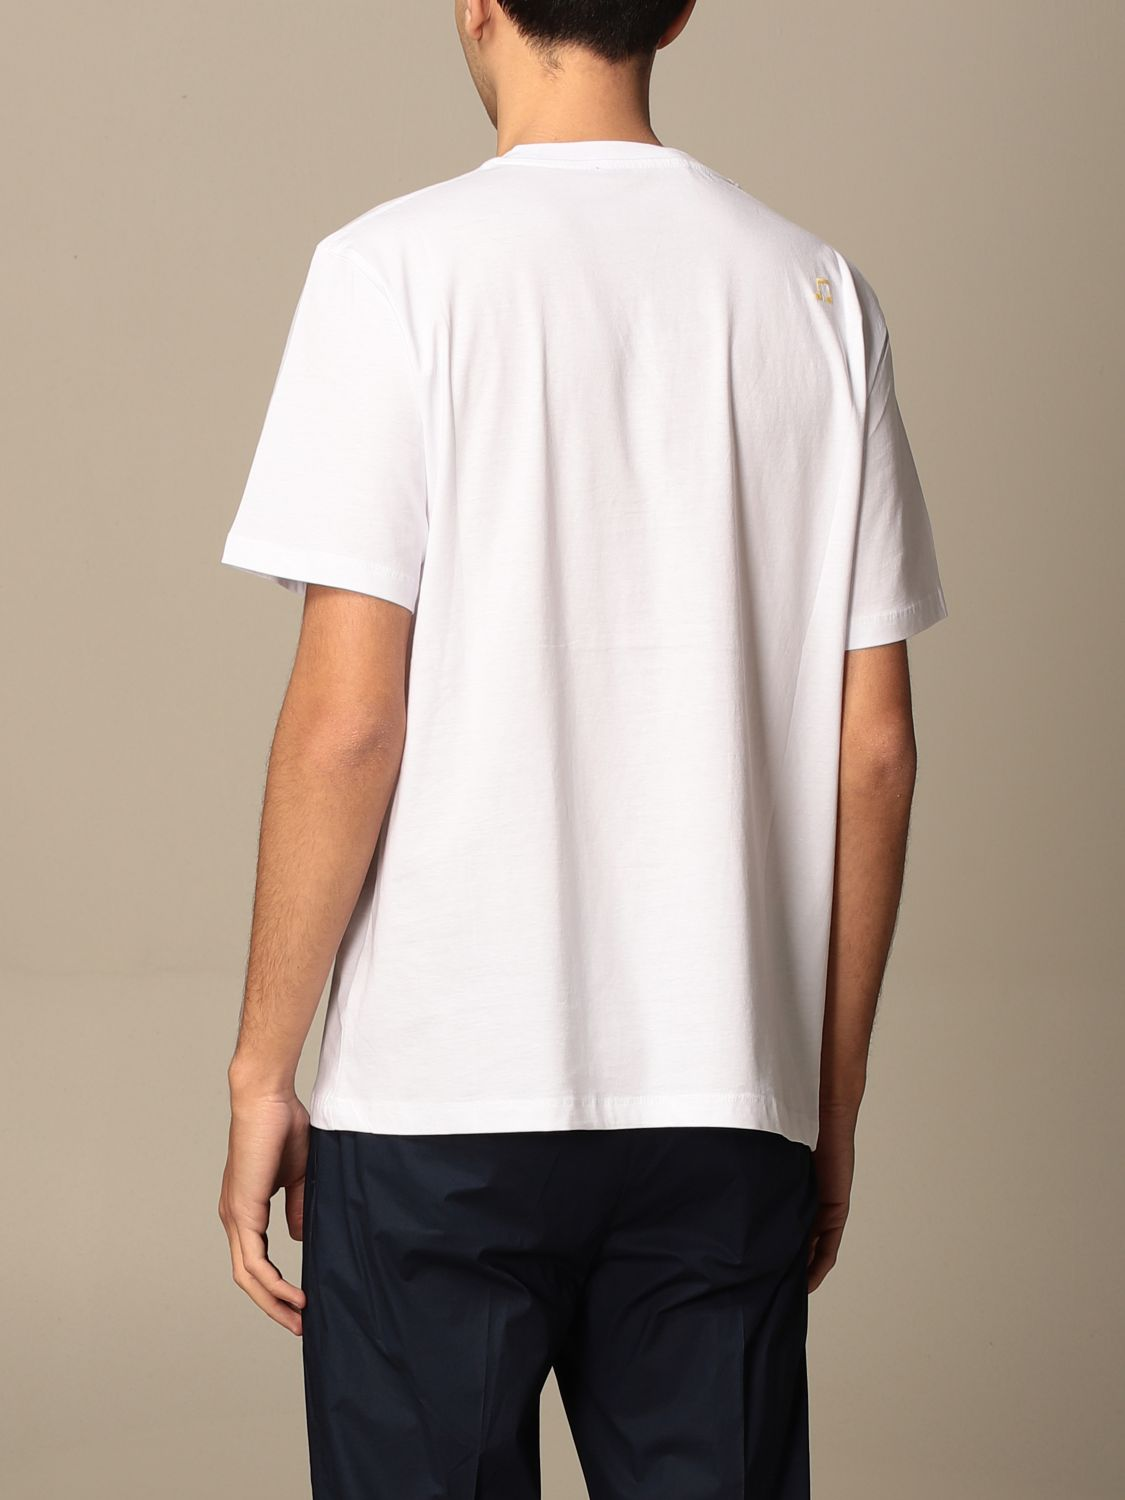 T-shirt Department 5: T-shirt Department Five in cotone con stampa Rajasthan bianco 2